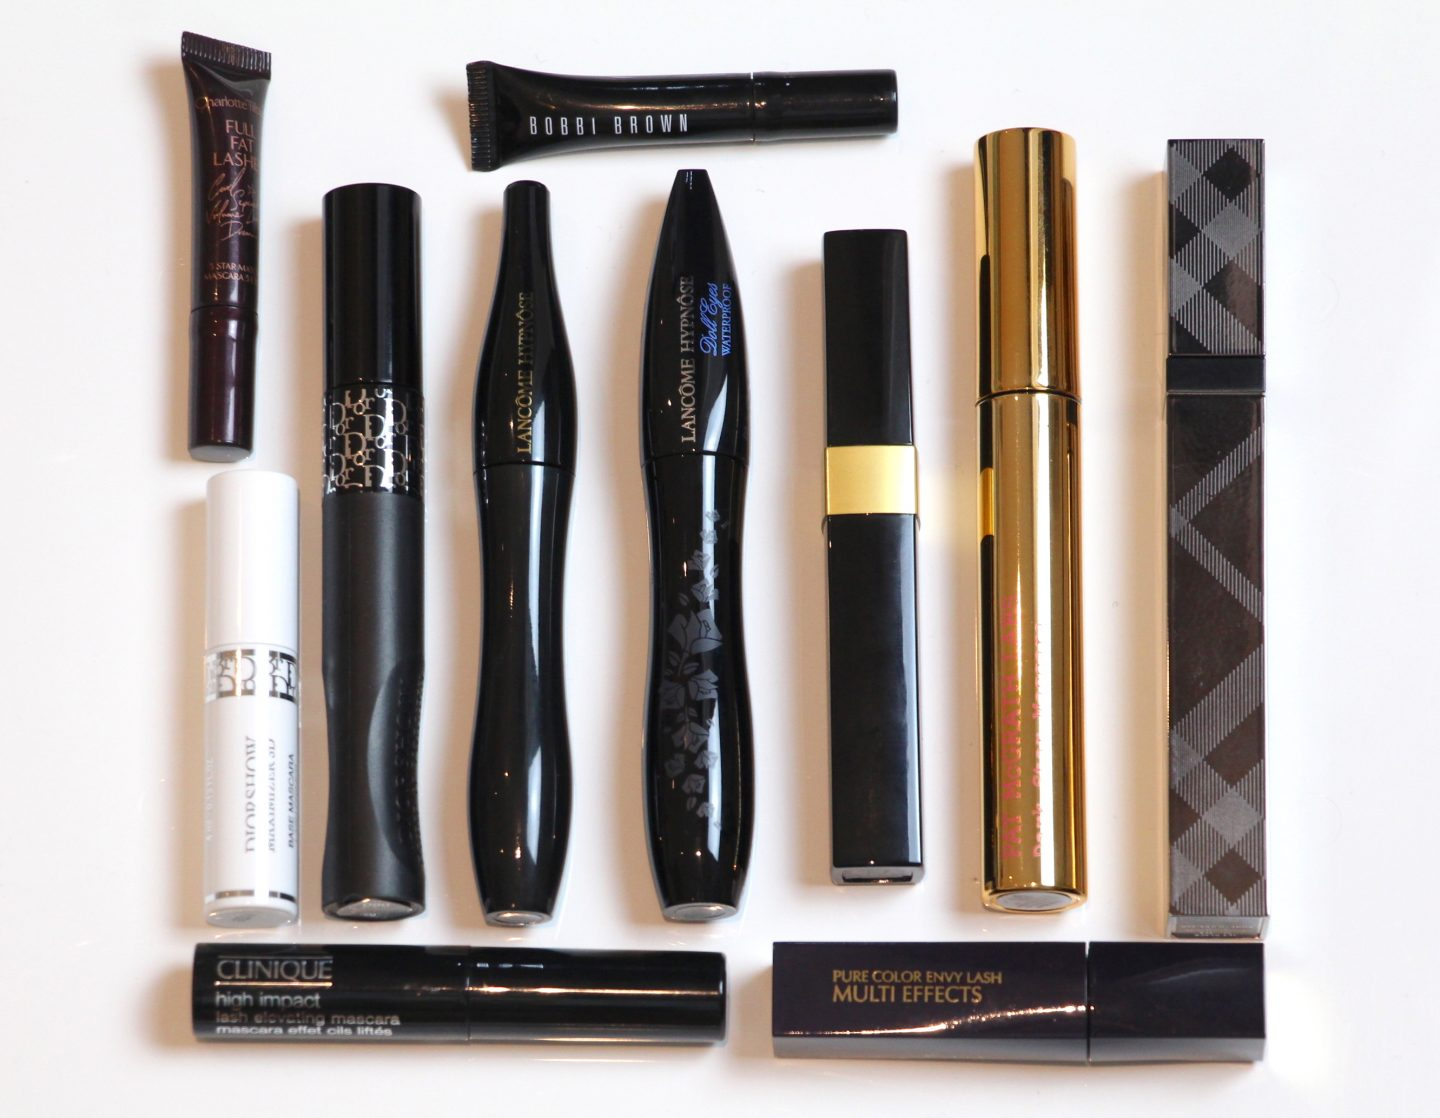 Mascara Round-up #2: Mini Reviews on Recent Empties